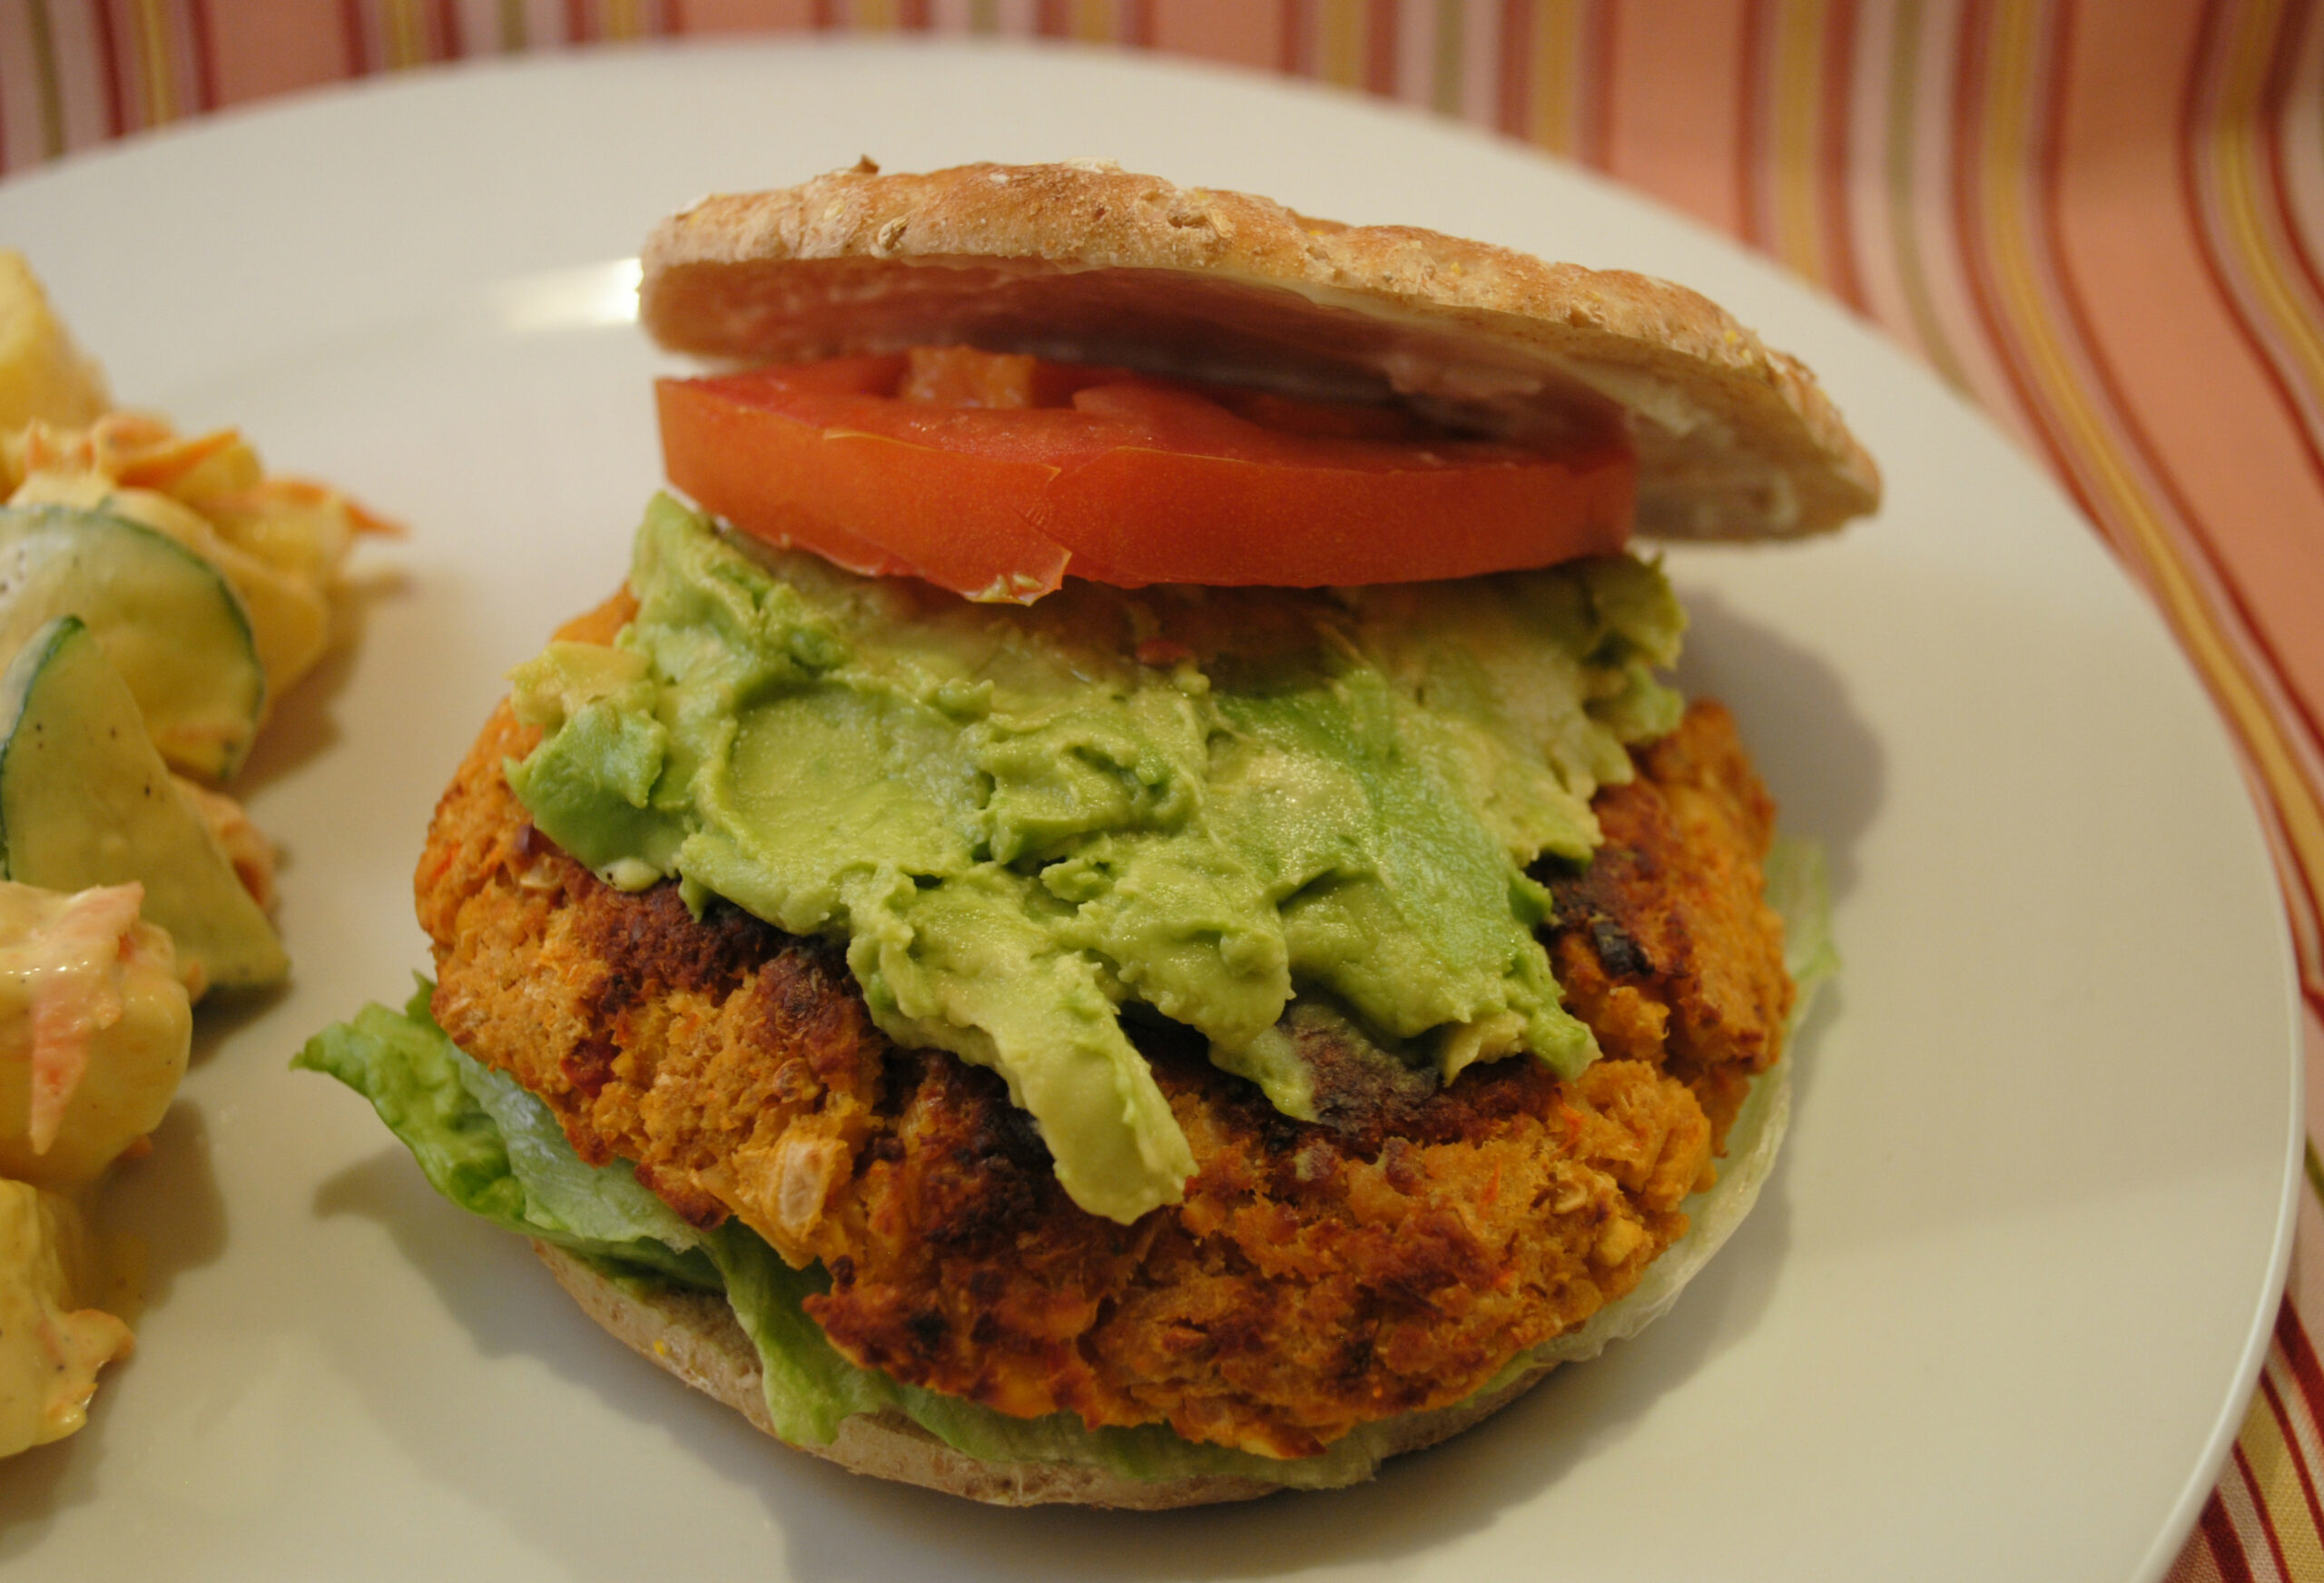 Spicy Chickpea Burgers - recipes vegetarian burger patty